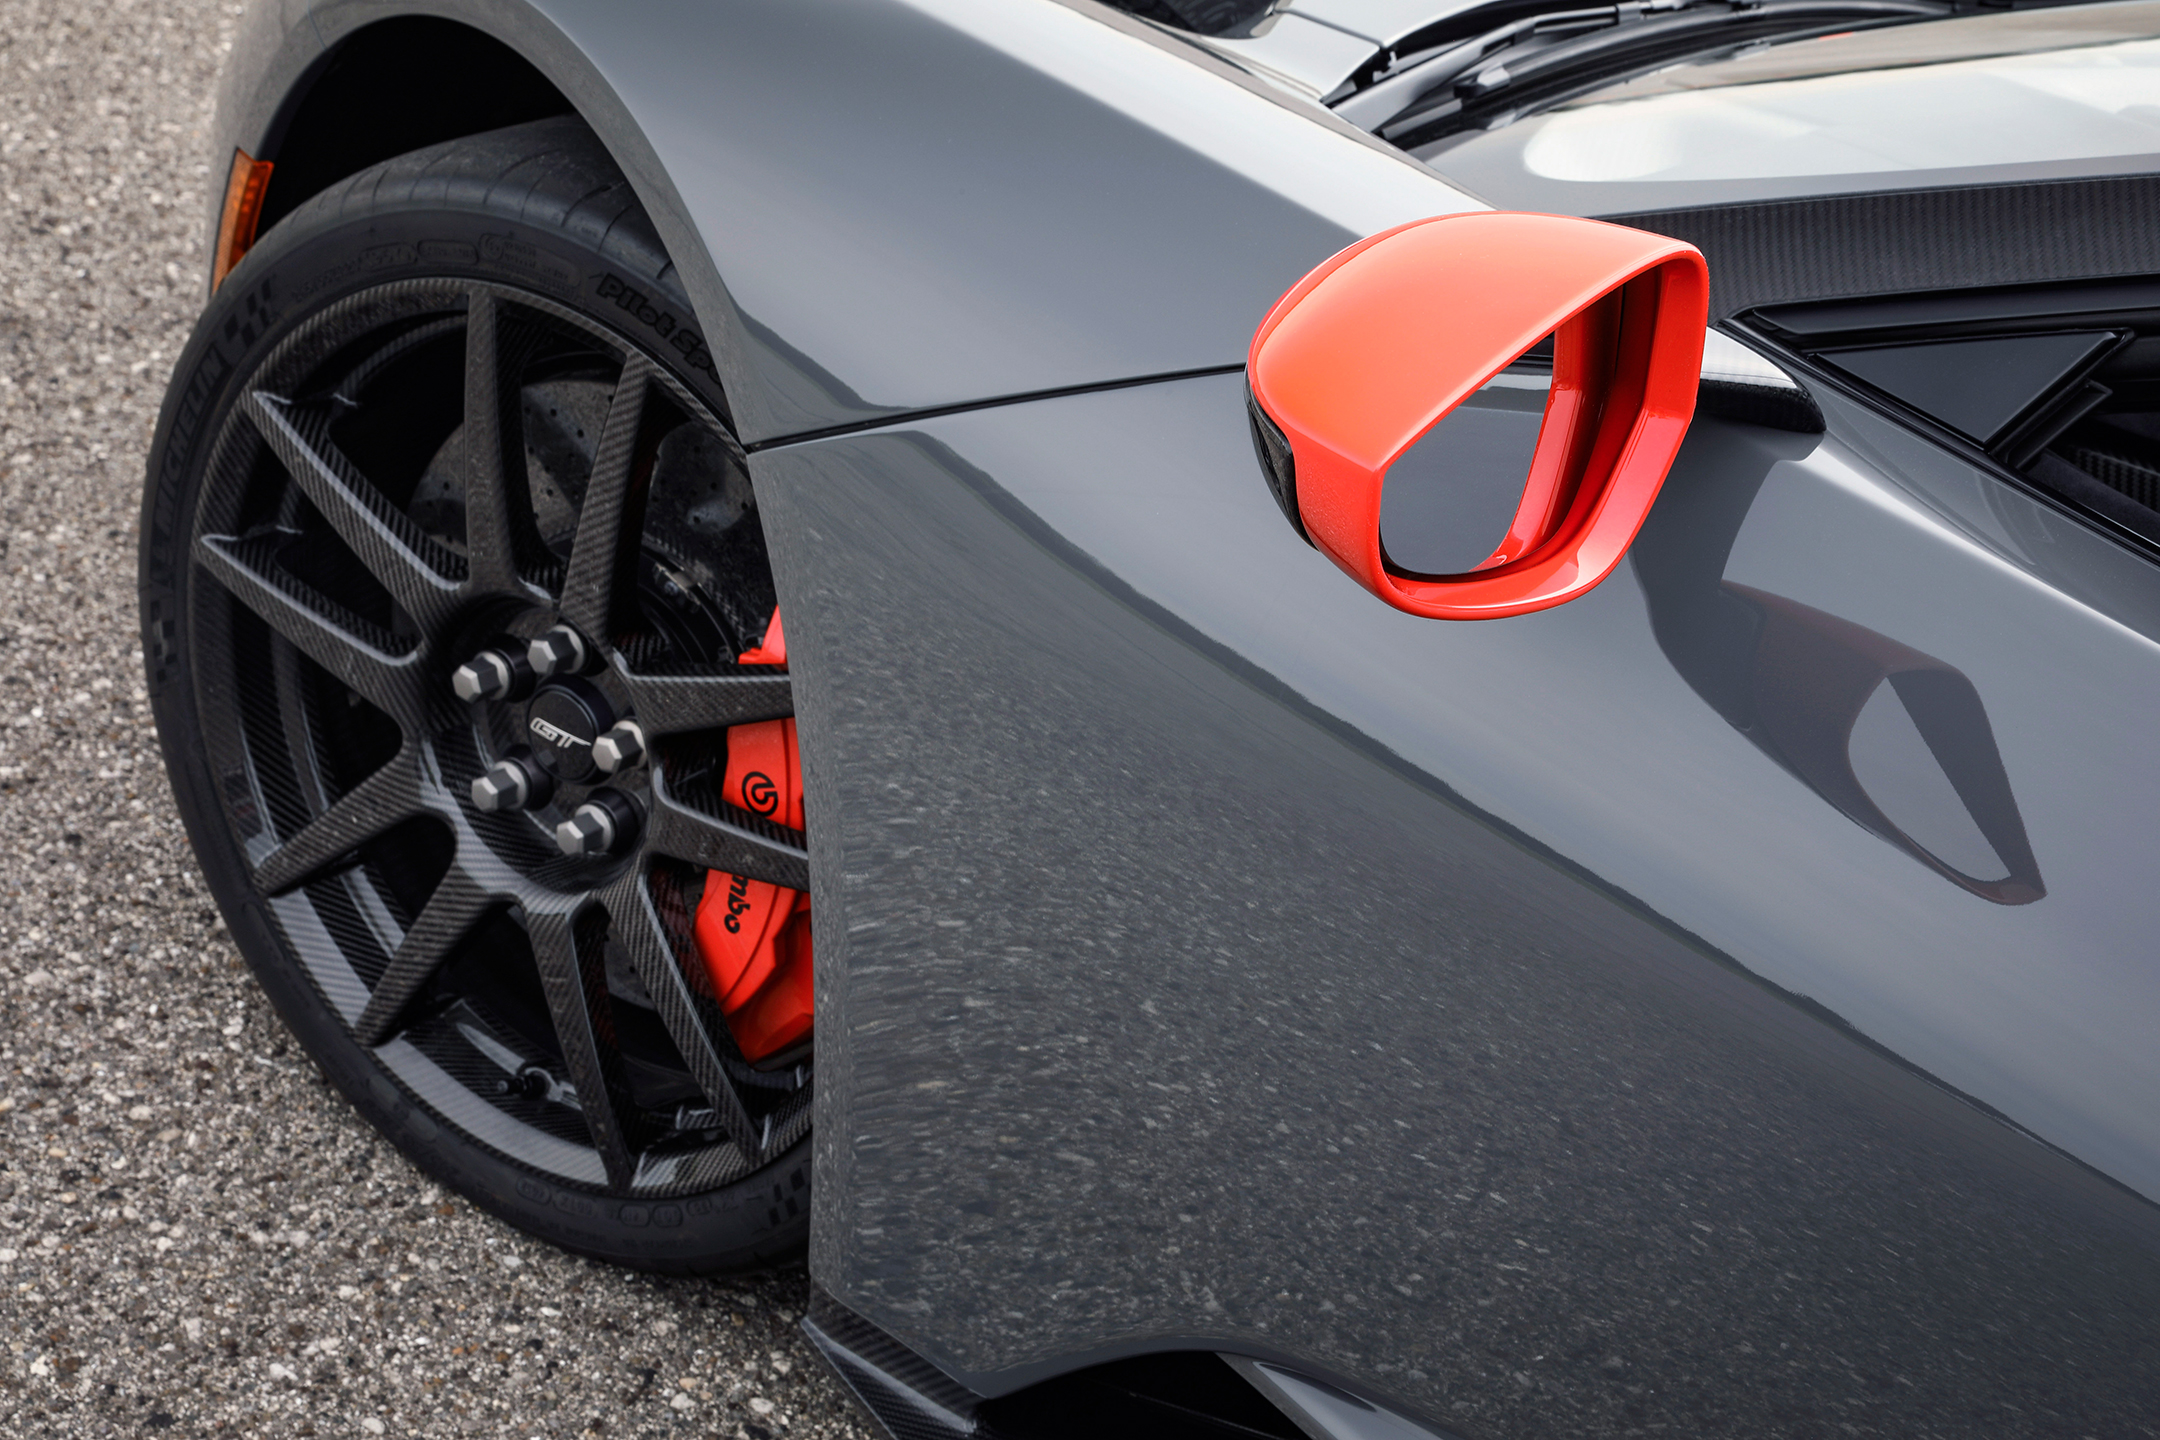 Ford GT Carbon Series - 2018 - front wheel